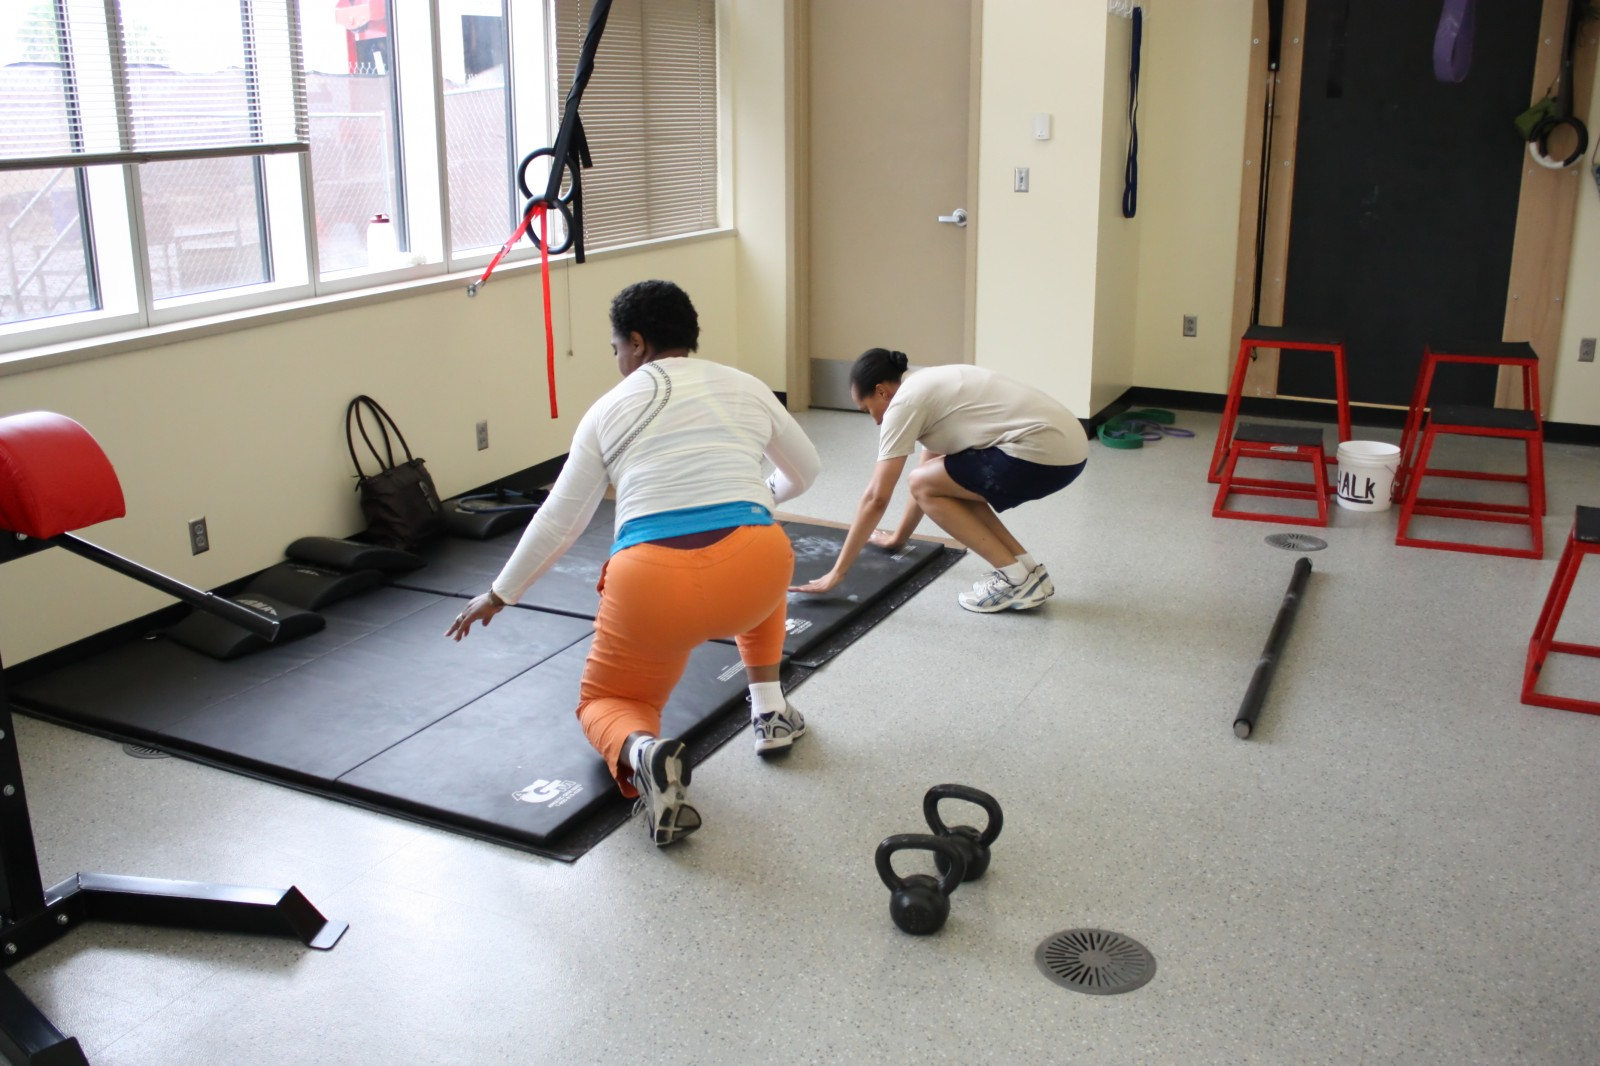 Brenda and Lili gettin' down on some burpees